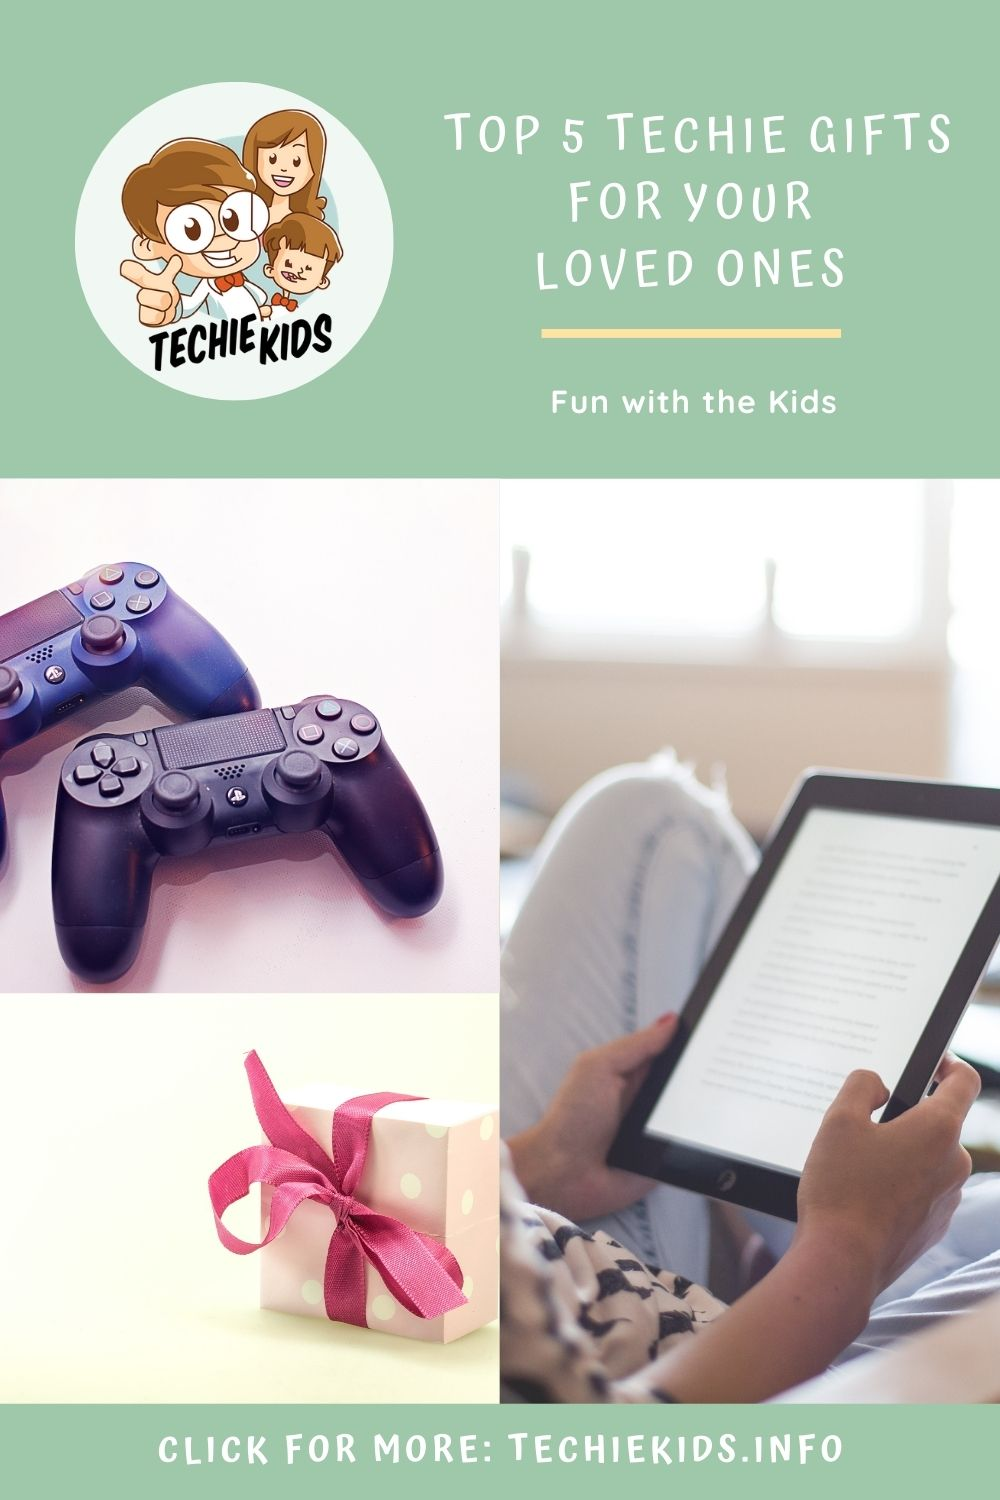 Top 5 Techie Gifts for your Loved Ones and More